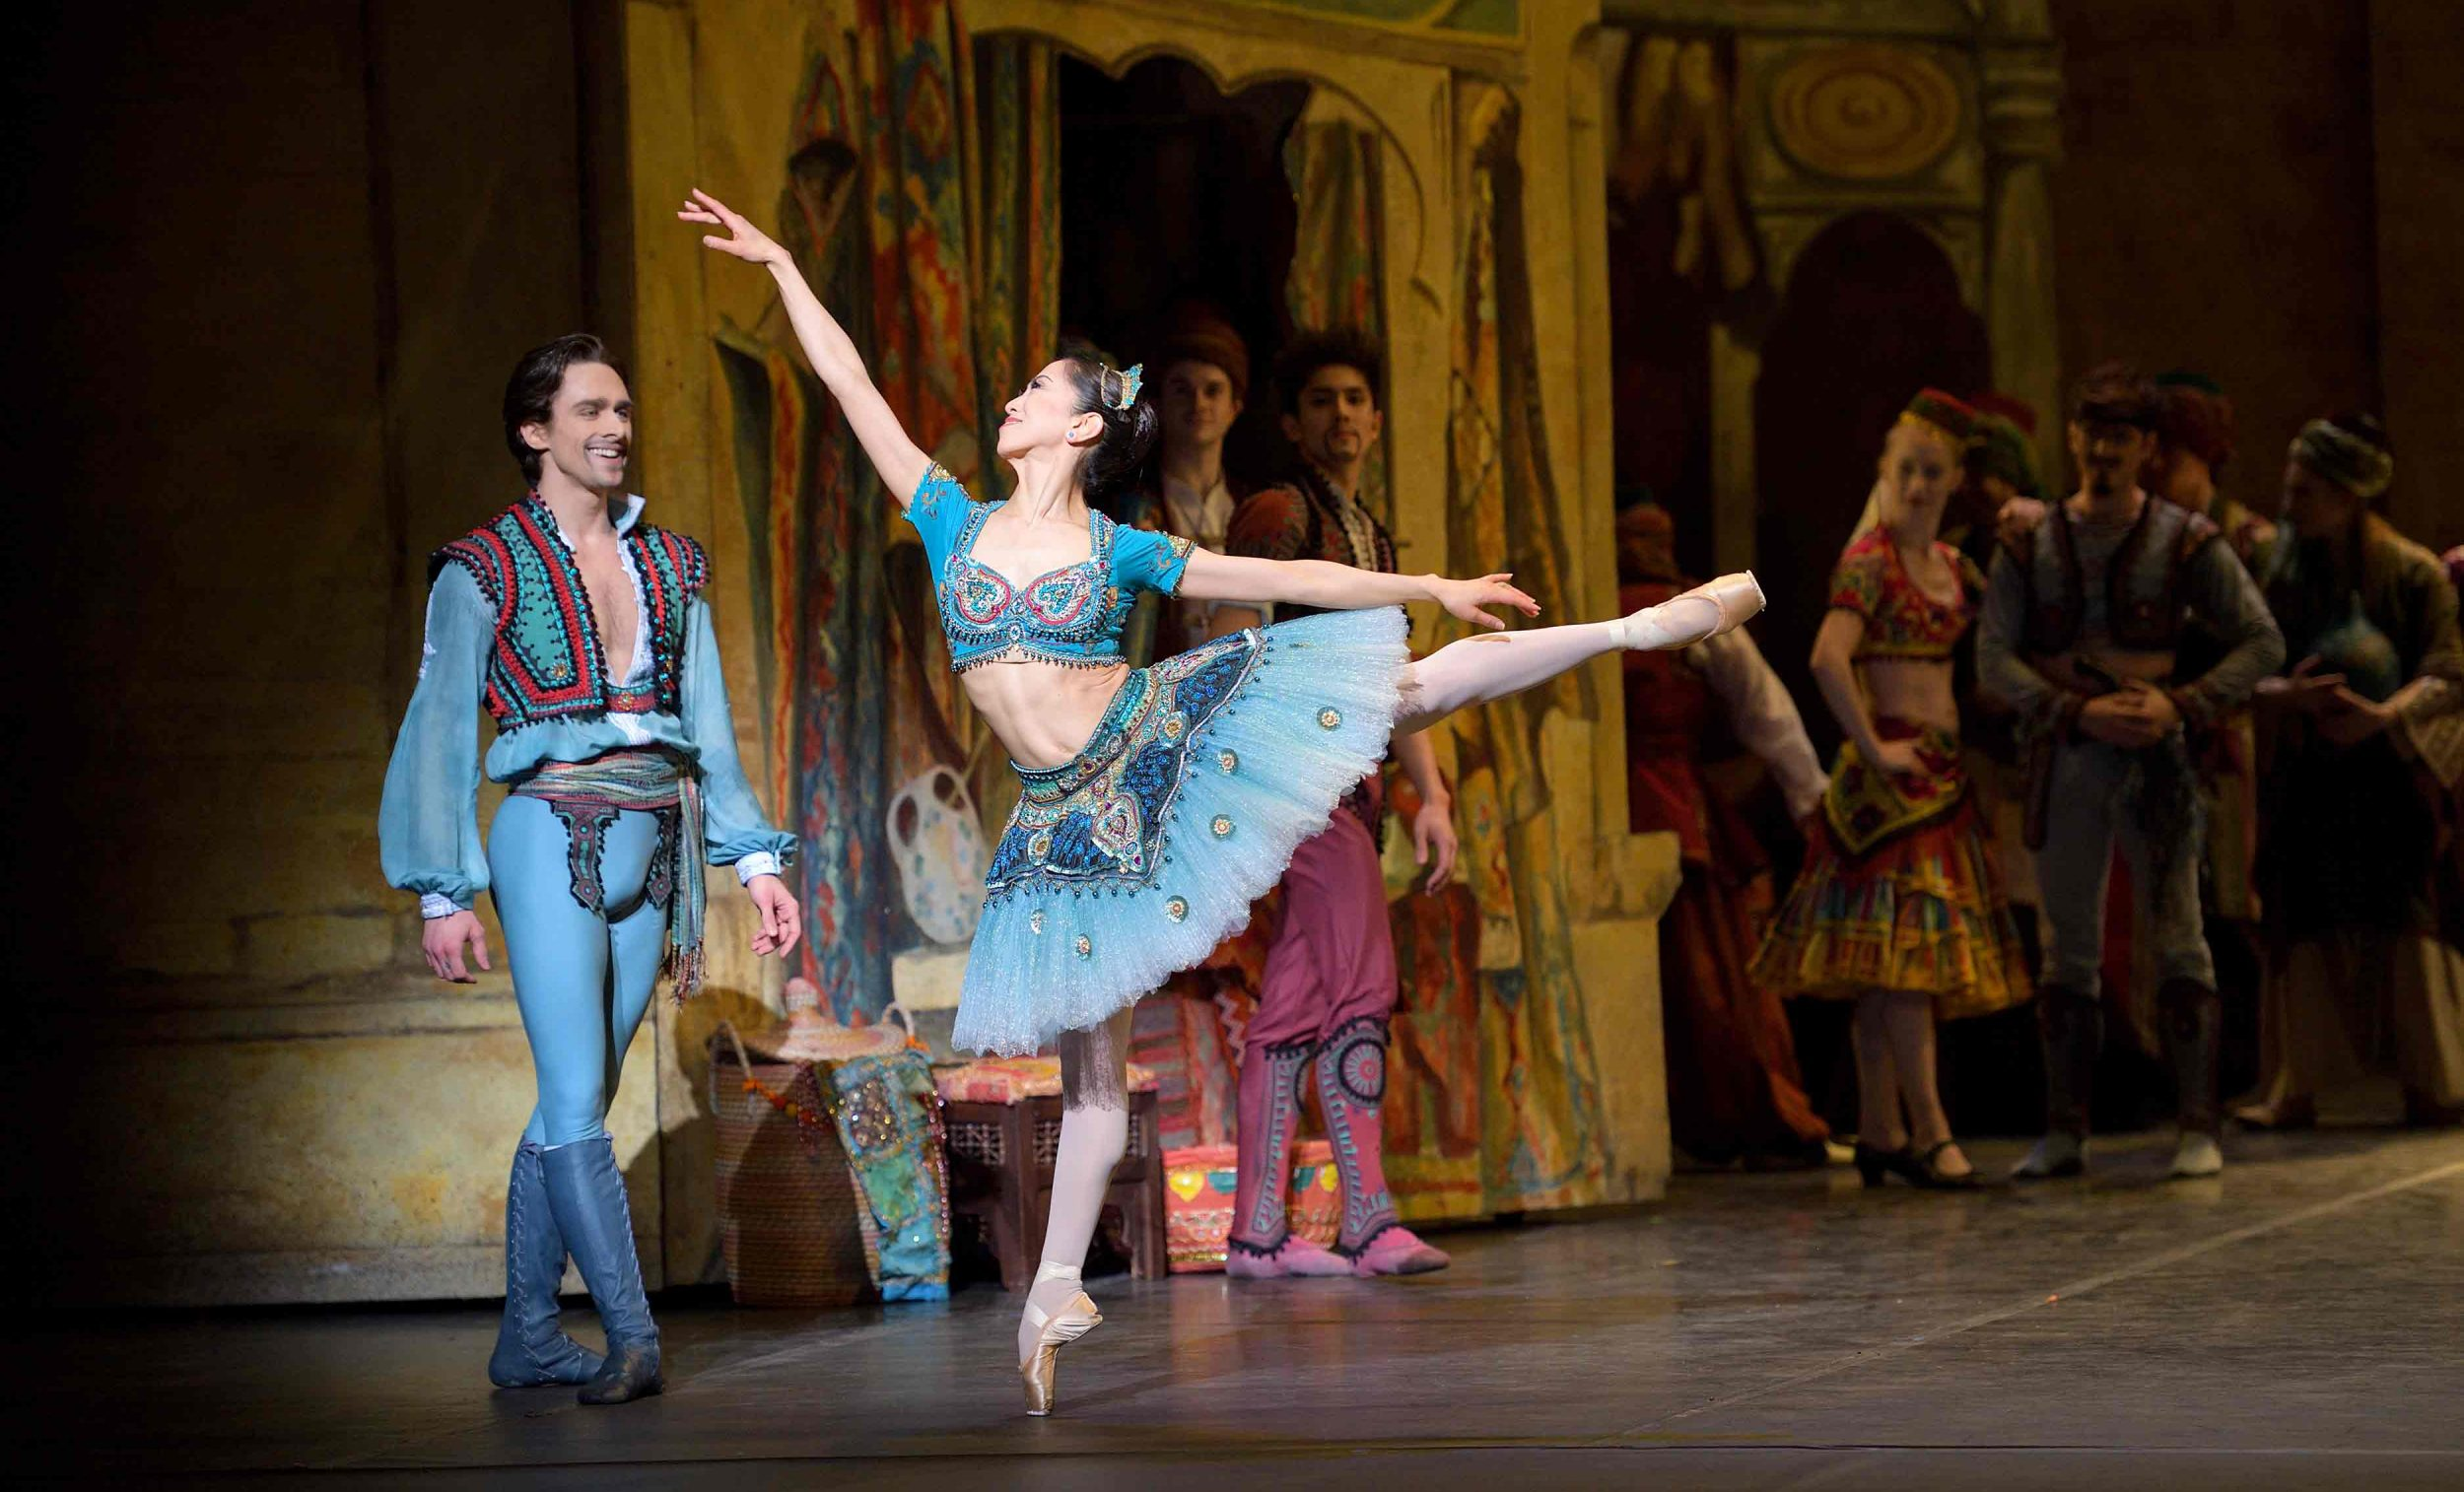 Erina Takahashi as Medora in Le Corsaire © Laurent Liotardo.